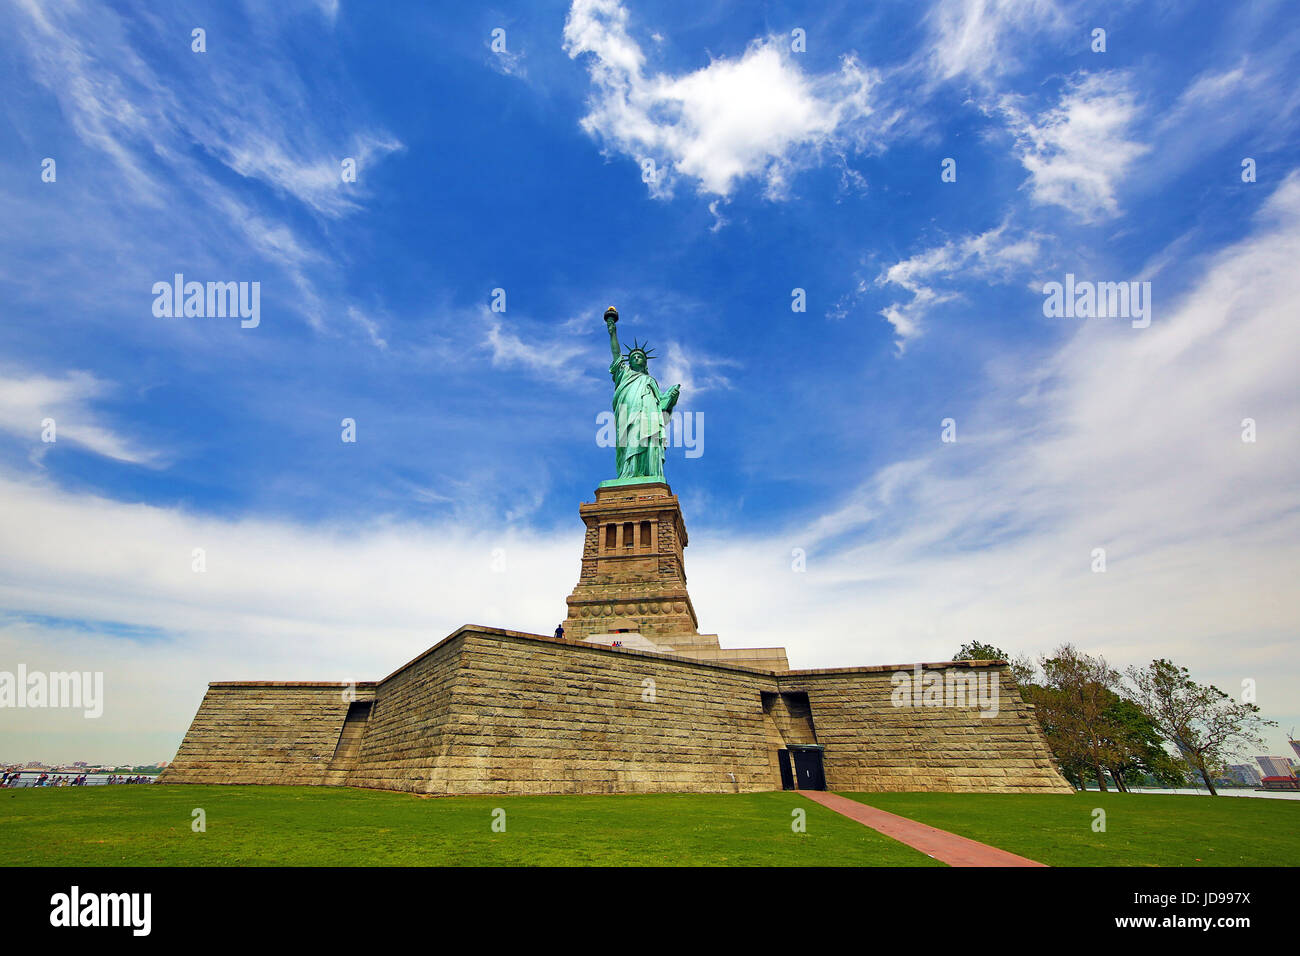 The Statue of Liberty, New York City, New York, USA - Stock Image